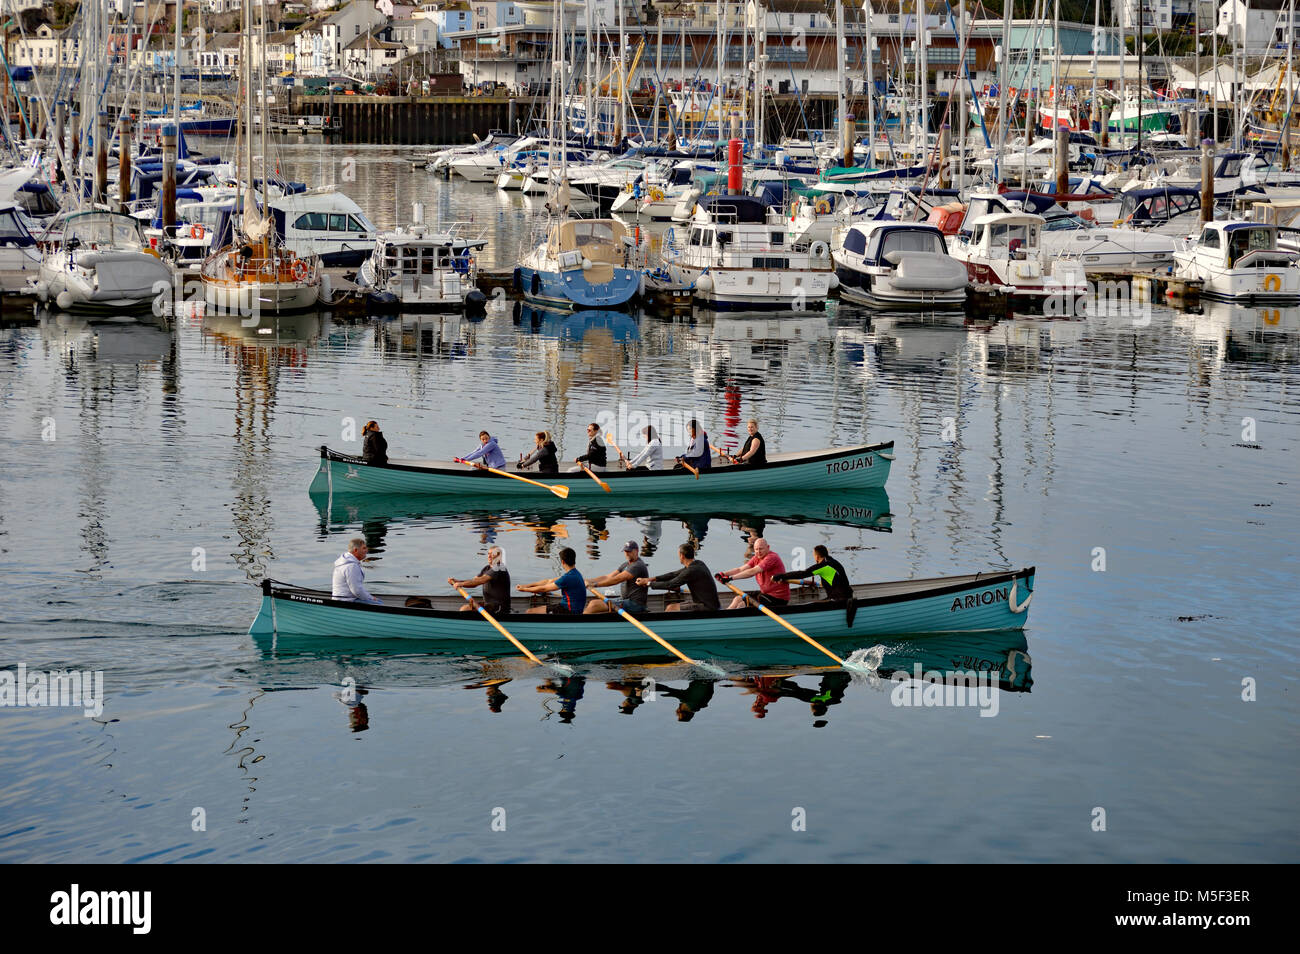 Brixham Gigs Trojan and Arion rowing out of Brixham harbour with yachts on the marina and fish quay in the background - Stock Image